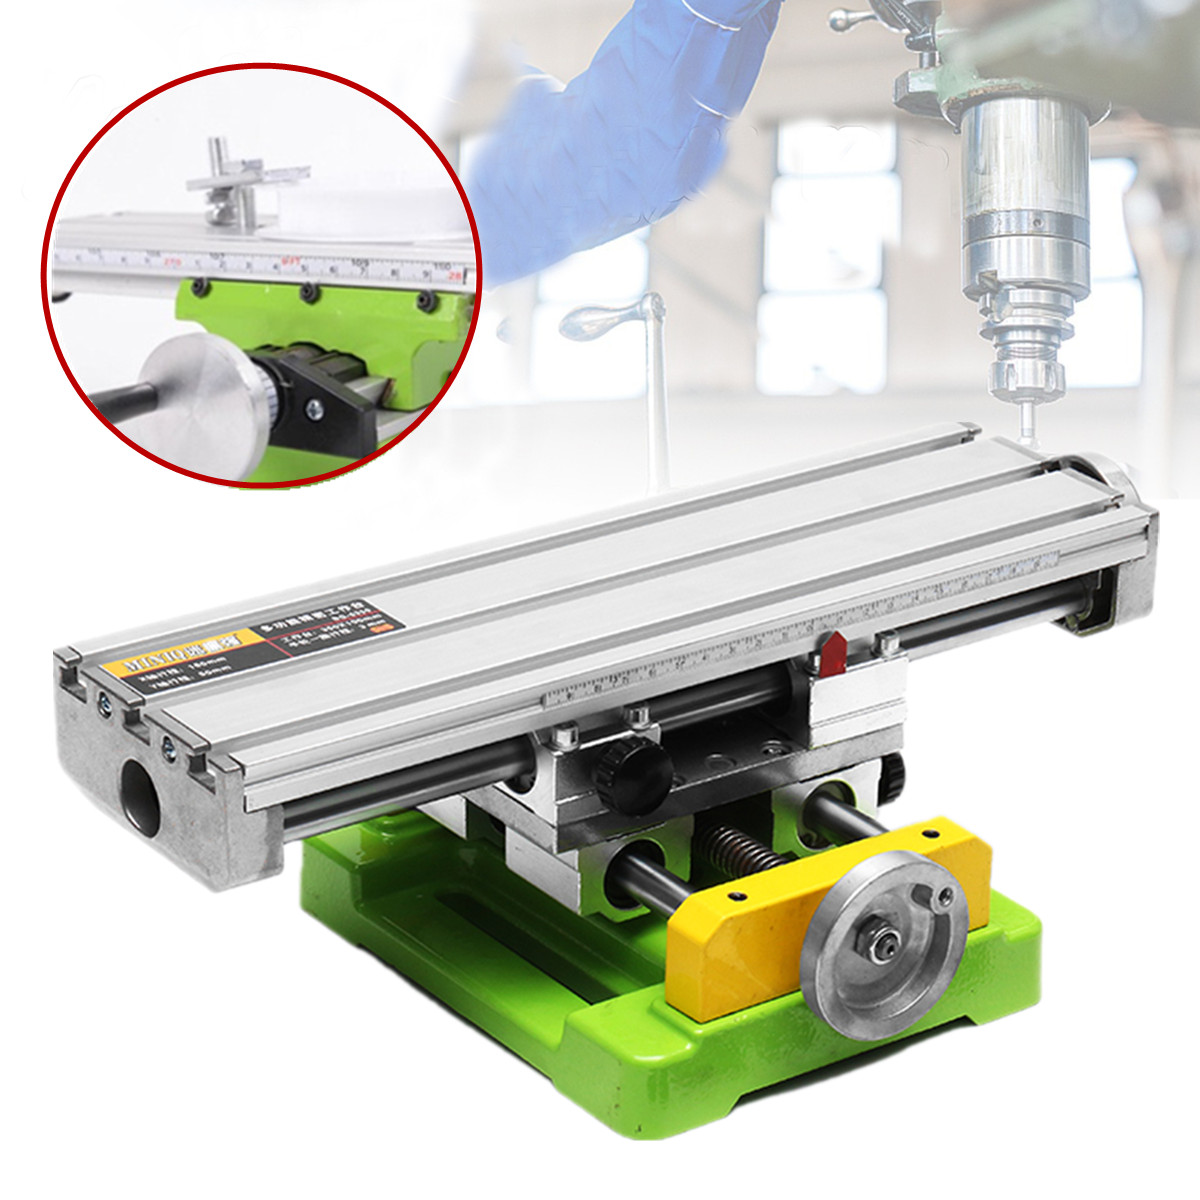 Miniature Precision Multifunction Milling Machine Bench Drill Vise Fixture worktable X Y-axis adjustment Coordinate TableMiniature Precision Multifunction Milling Machine Bench Drill Vise Fixture worktable X Y-axis adjustment Coordinate Table